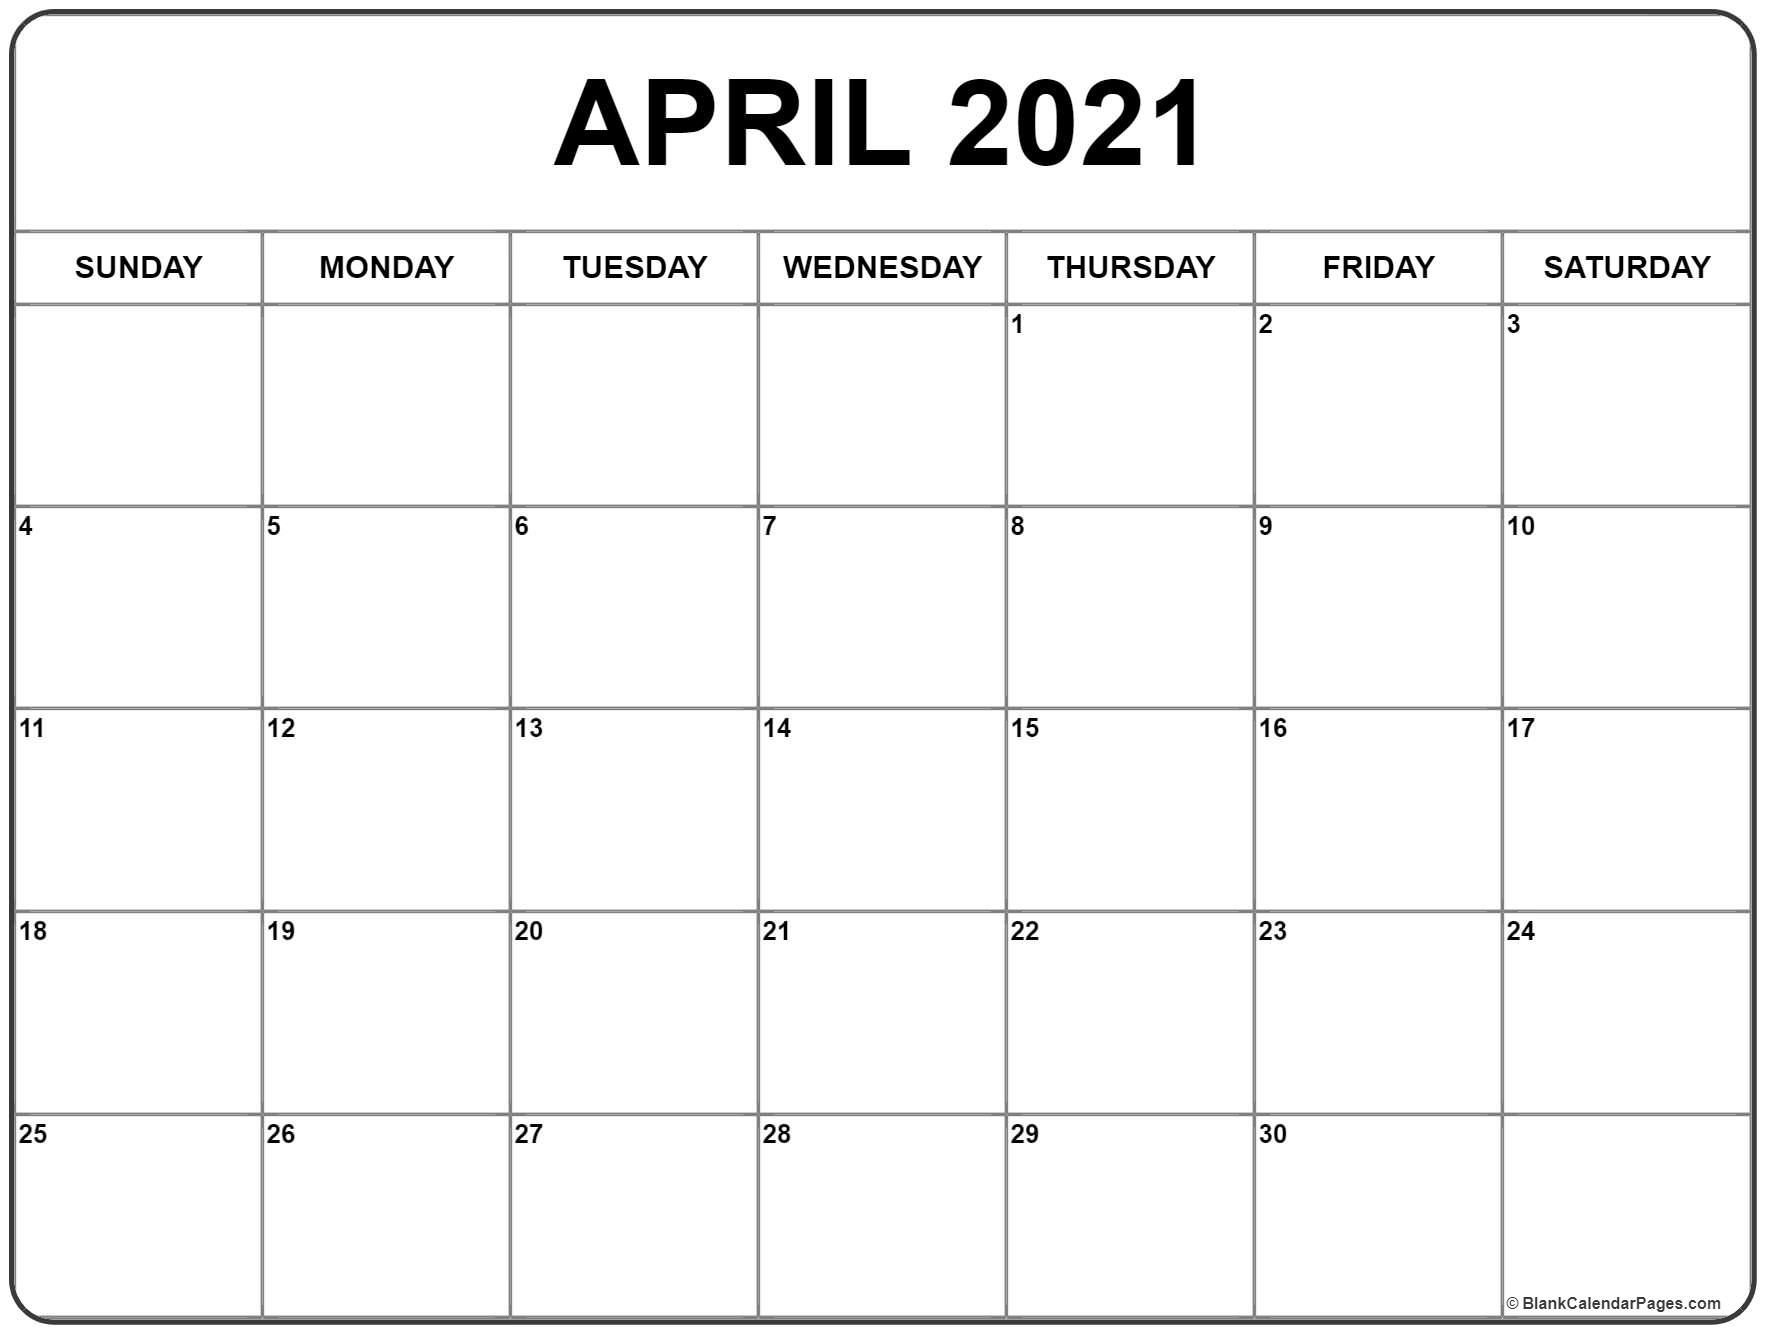 Calendar For March And April 2021 With Holidays | Calendar